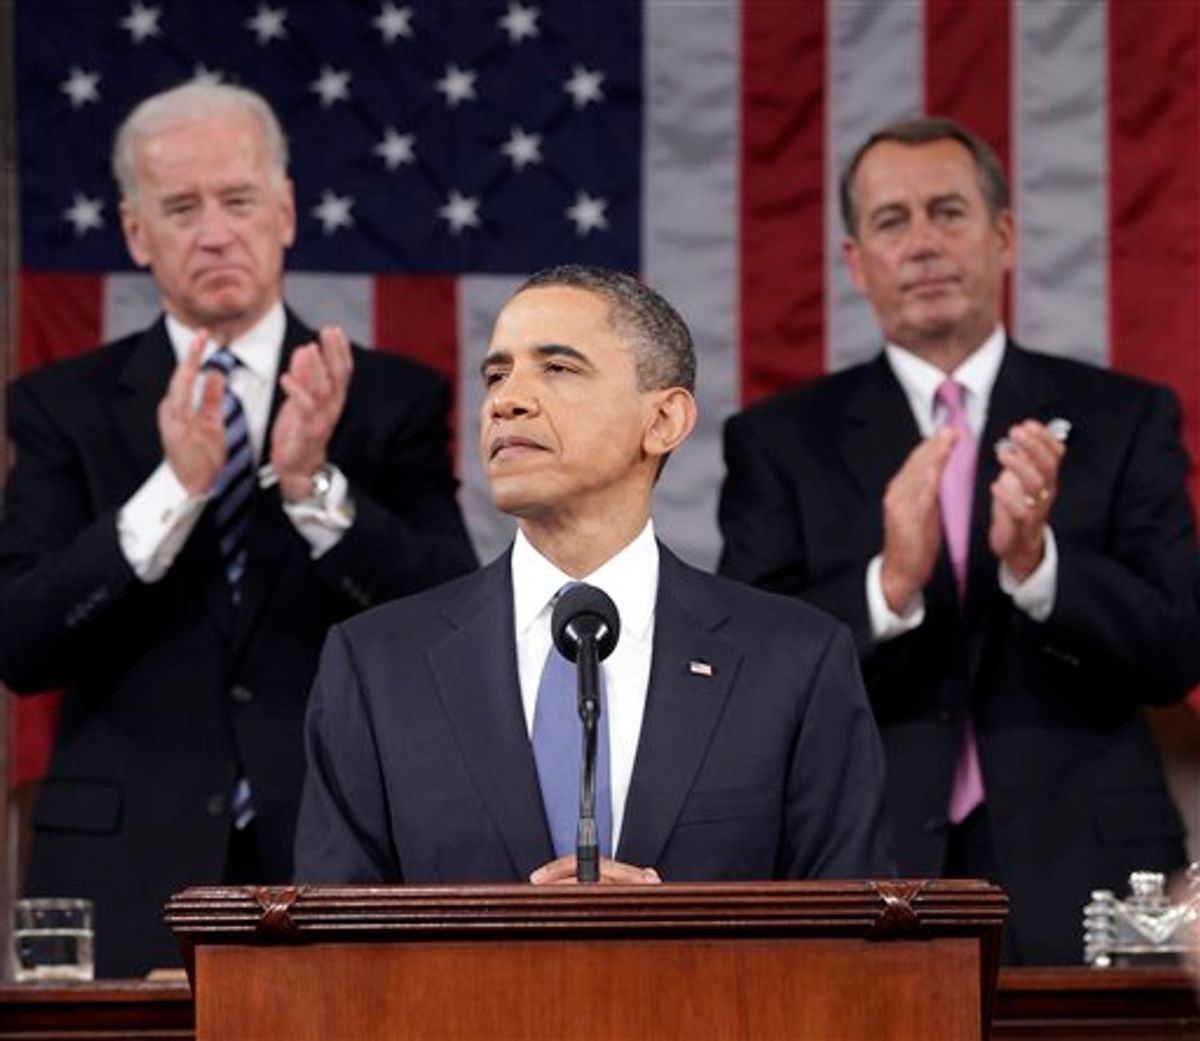 President Barack Obama is applauded by Vice President Joe Biden and House Speaker John Boehner on Capitol Hill in Washington, Tuesday, Jan. 25, 2011, while delivering his State of the Union address  (AP Photo/Pablo Martinez Monsivais, Pool) (AP)